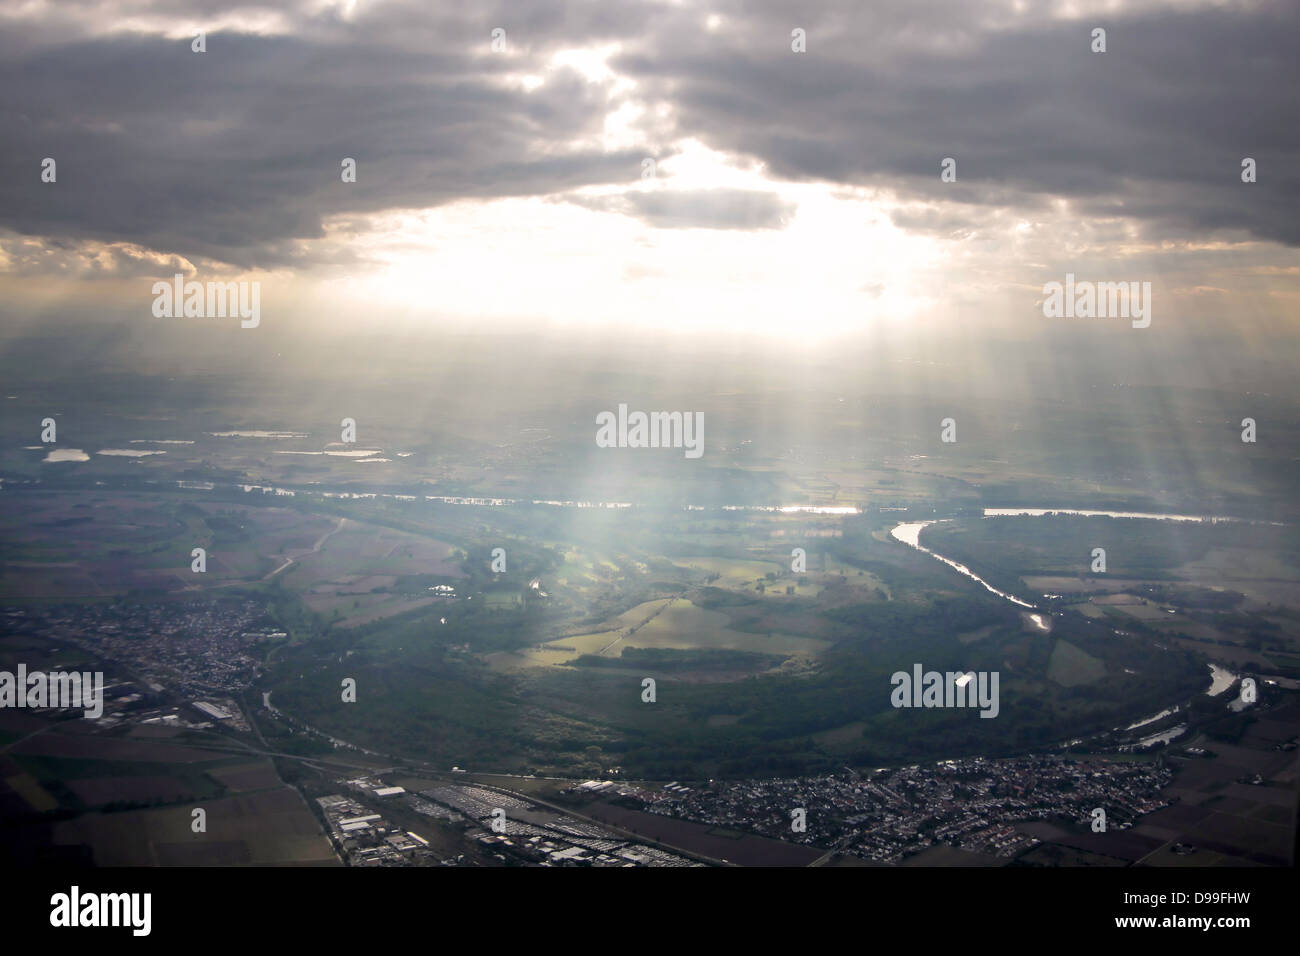 aerial photography of southern Germany in the evening - Stock Image